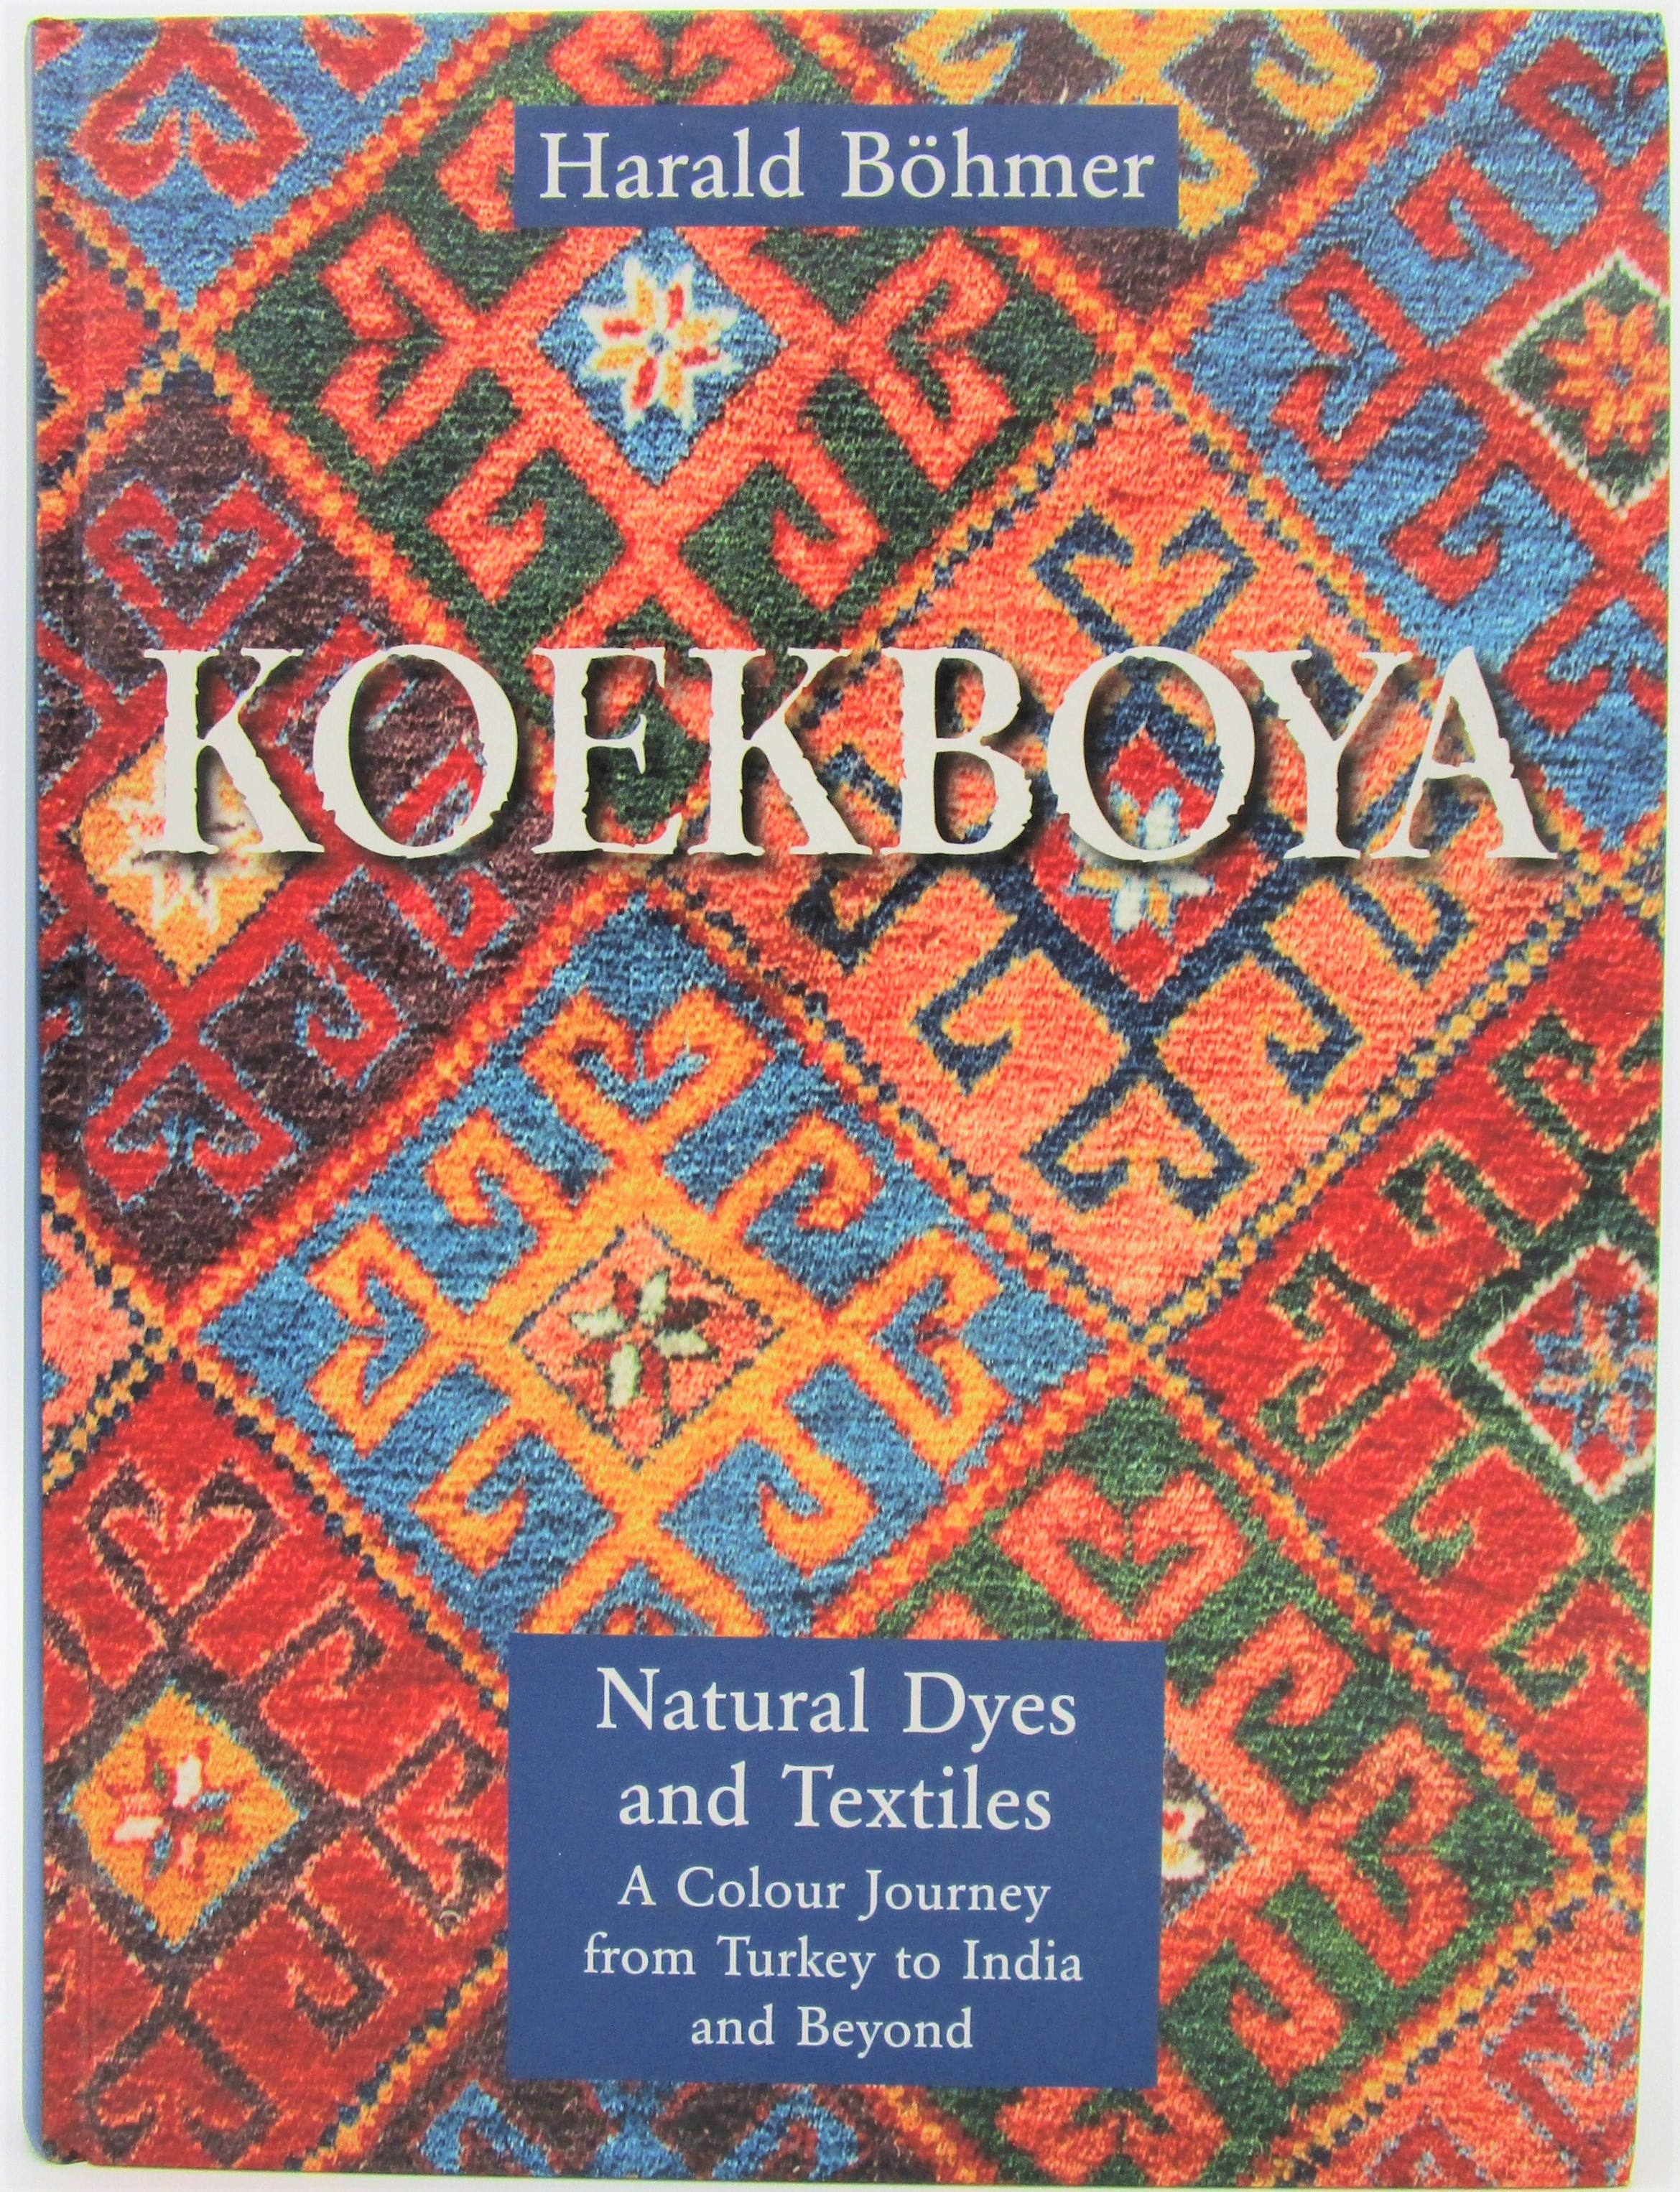 KOEKBOYA: NATURAL DYES AND TEXTILES, by Harald Bohmer - 2002 [Signed]